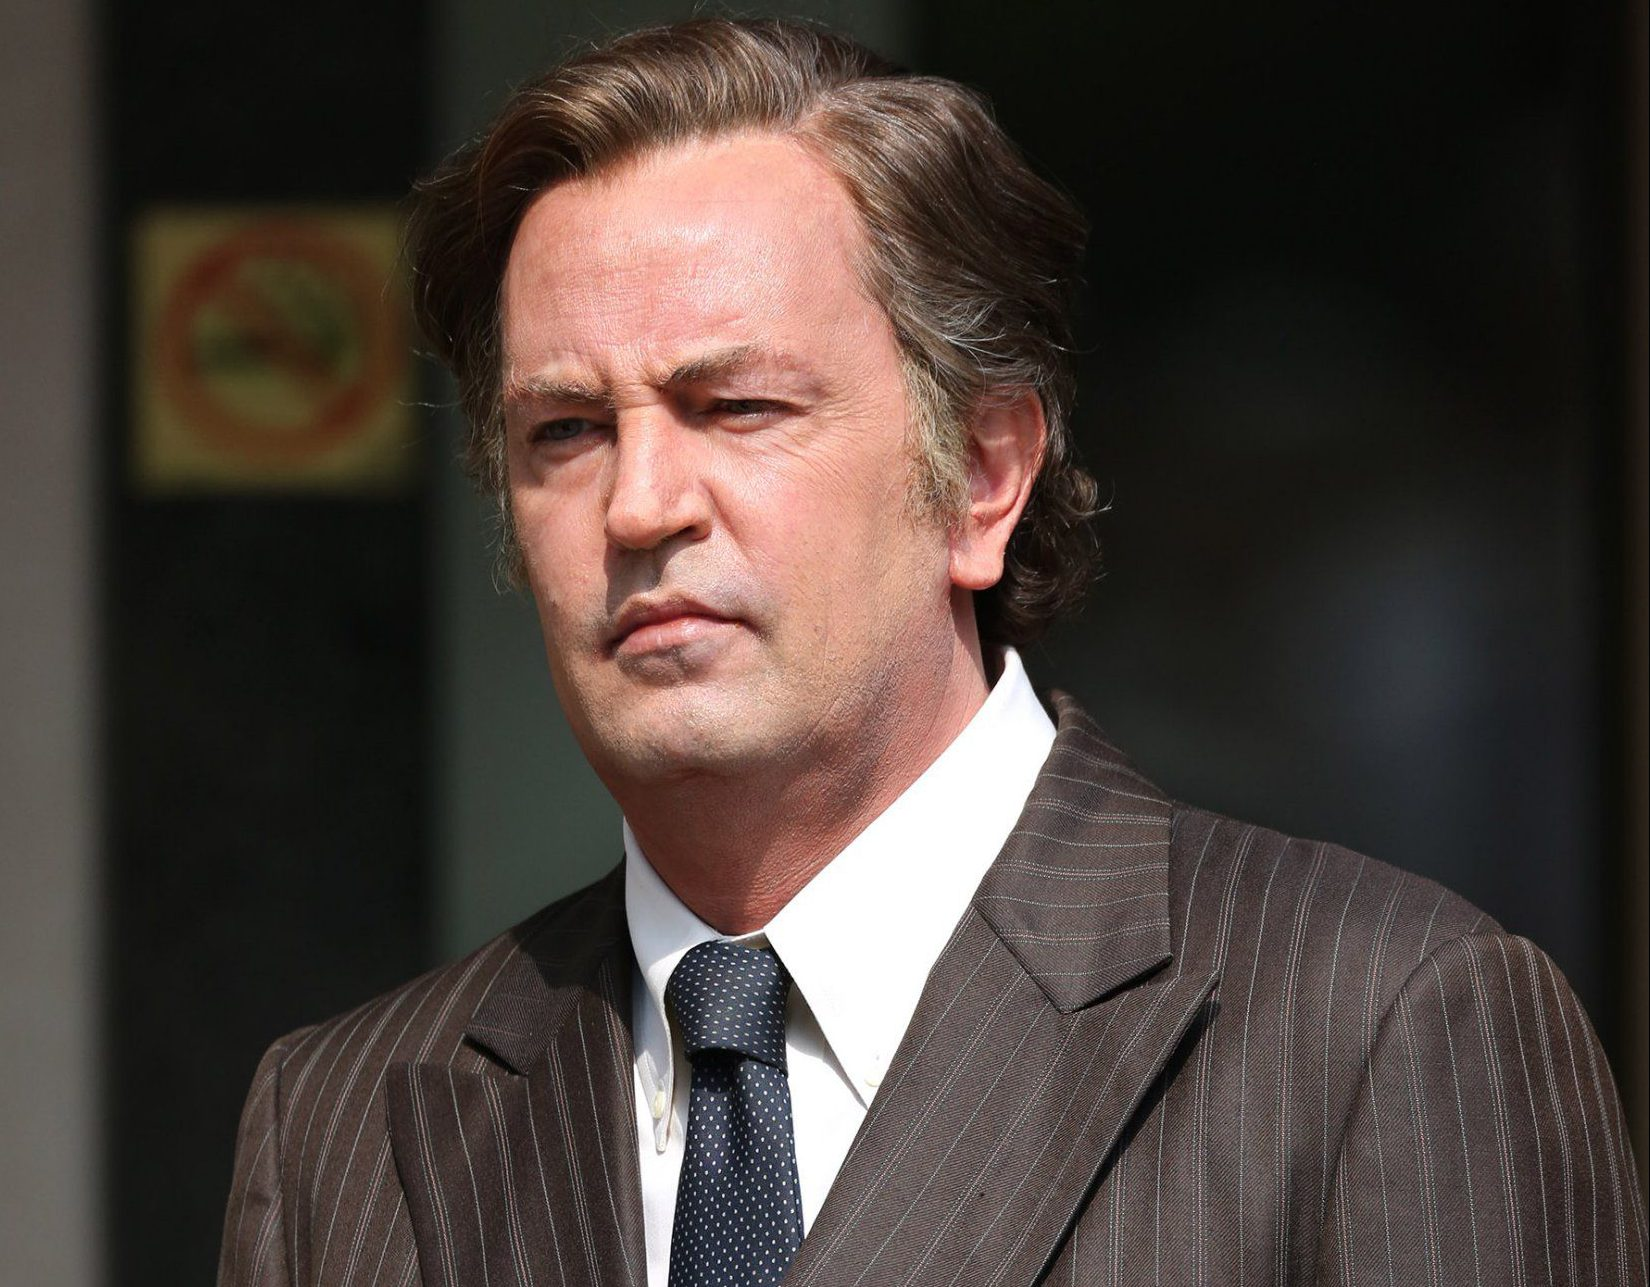 Matthew Perry has completely ditched Chandler Bing by the looks of his new role